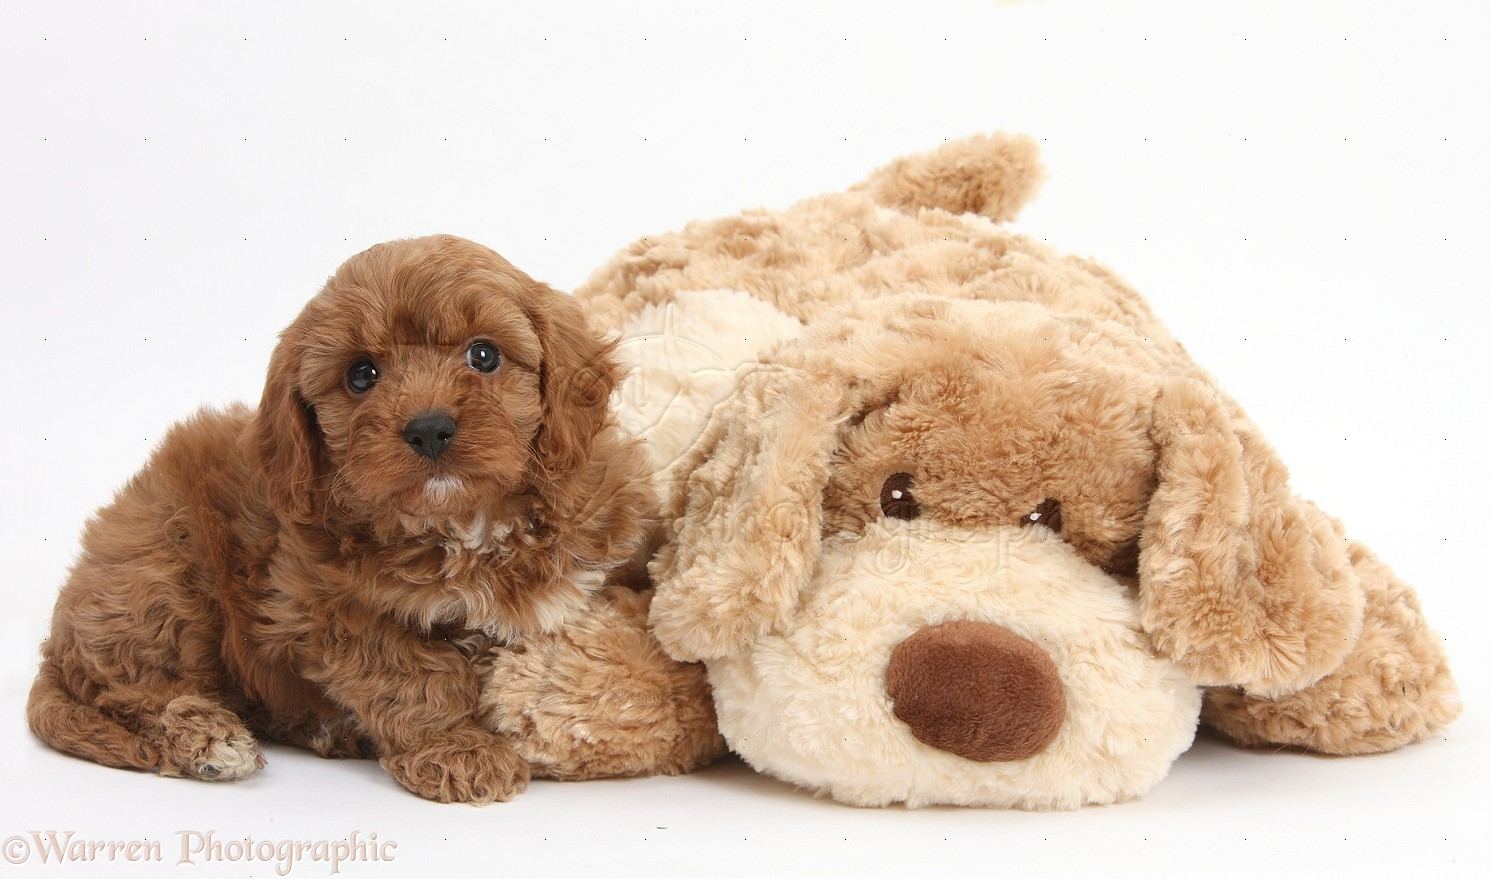 Soft Toy Dog Cavapoo Pup 6 Weeks Old And Soft Toy Dog Photo Wp29512